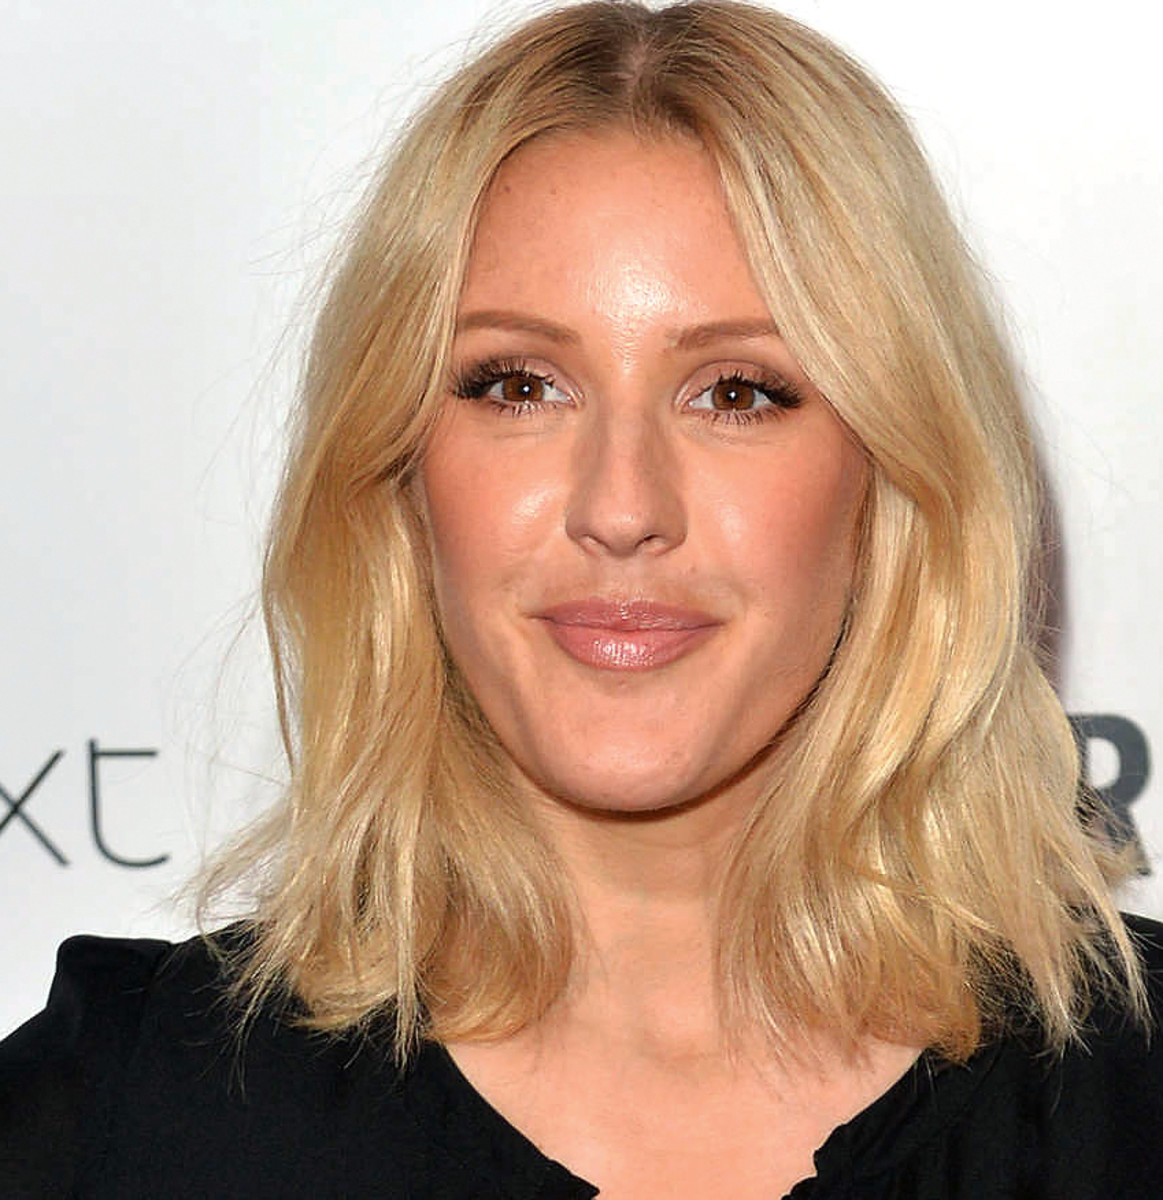 MAC Ellie Goulding: At the Glamour Women of the Year Awards, June 2015.